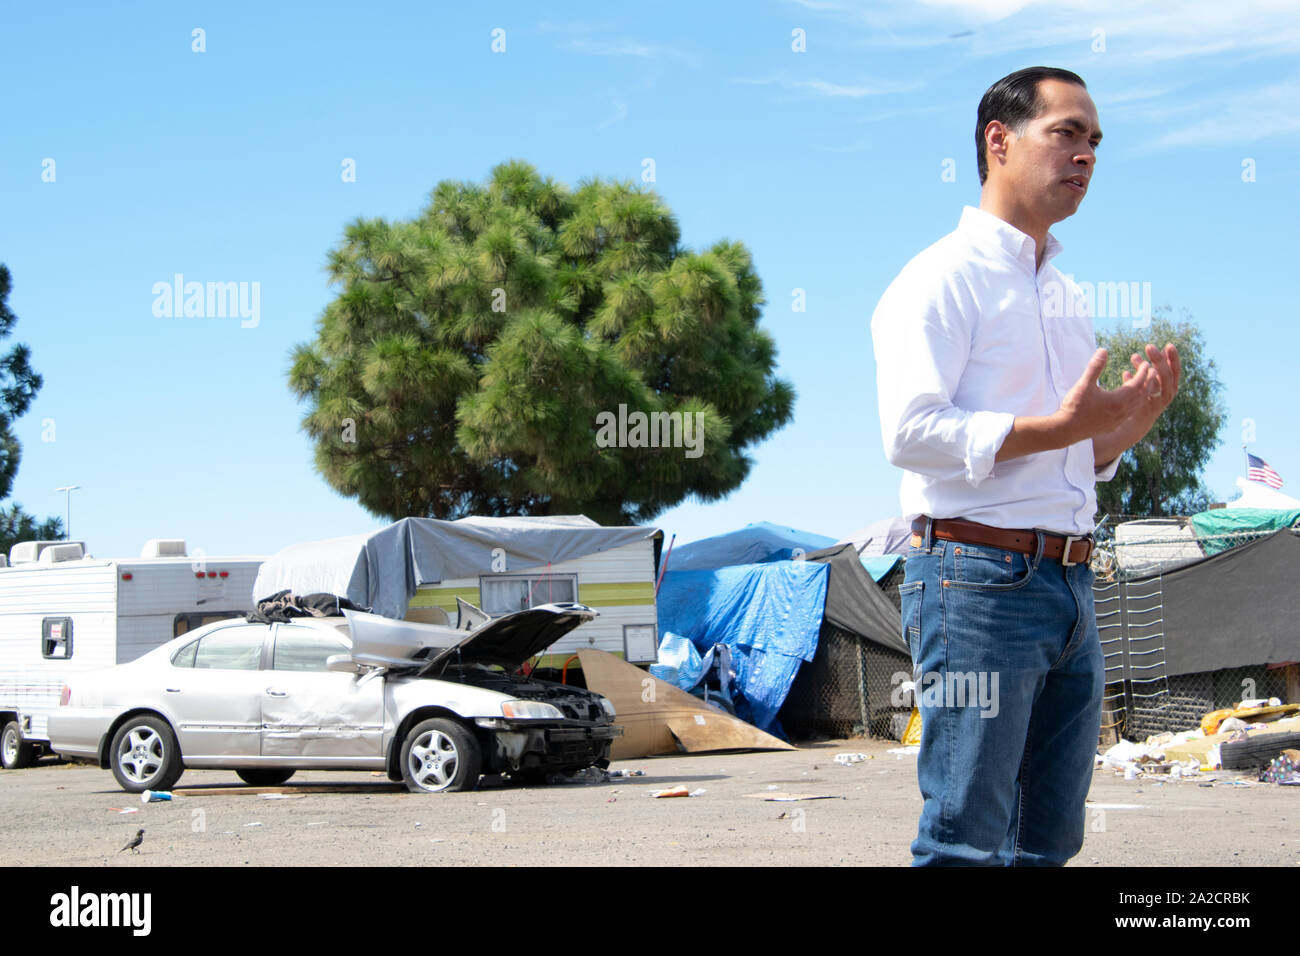 Democratic Presidential Candidate Julián Castro speaks at an Oakland homeless encampment on Sept. 25. Stock Photo